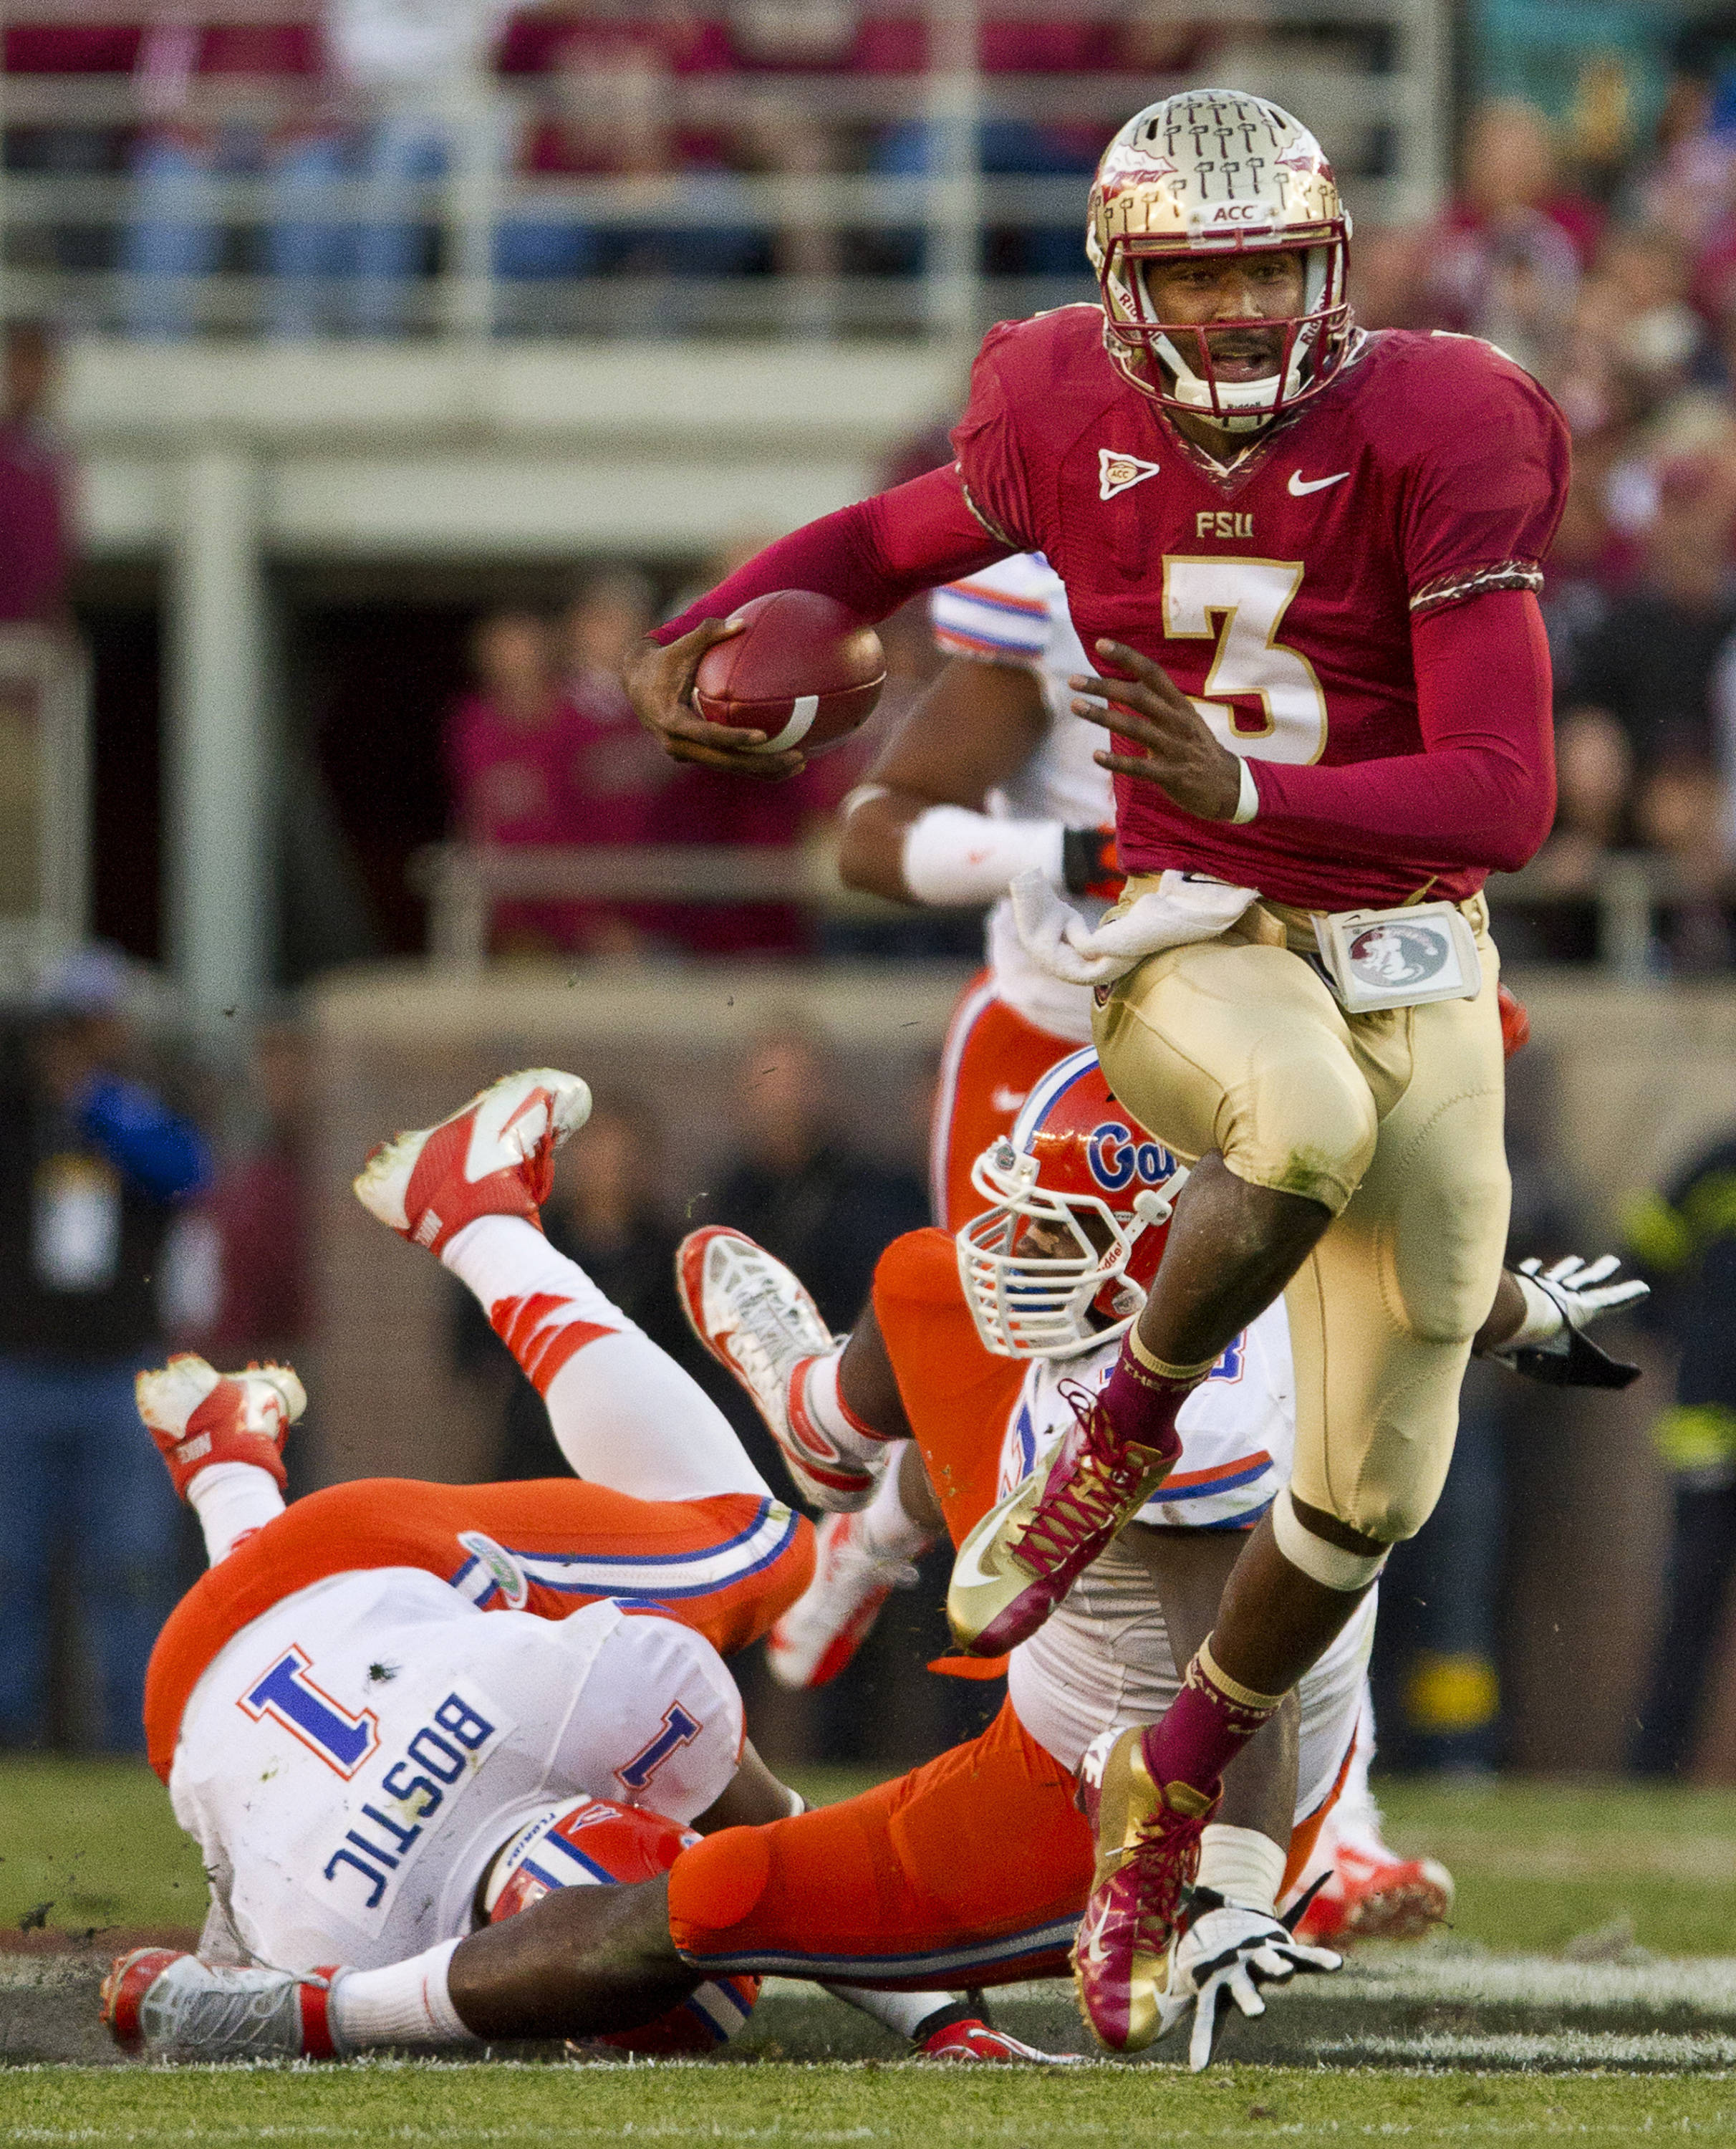 EJ Manuel (3) carries the ball during FSU Football's game against UF on Saturday, November 24, 2012 in Tallahassee, Fla.